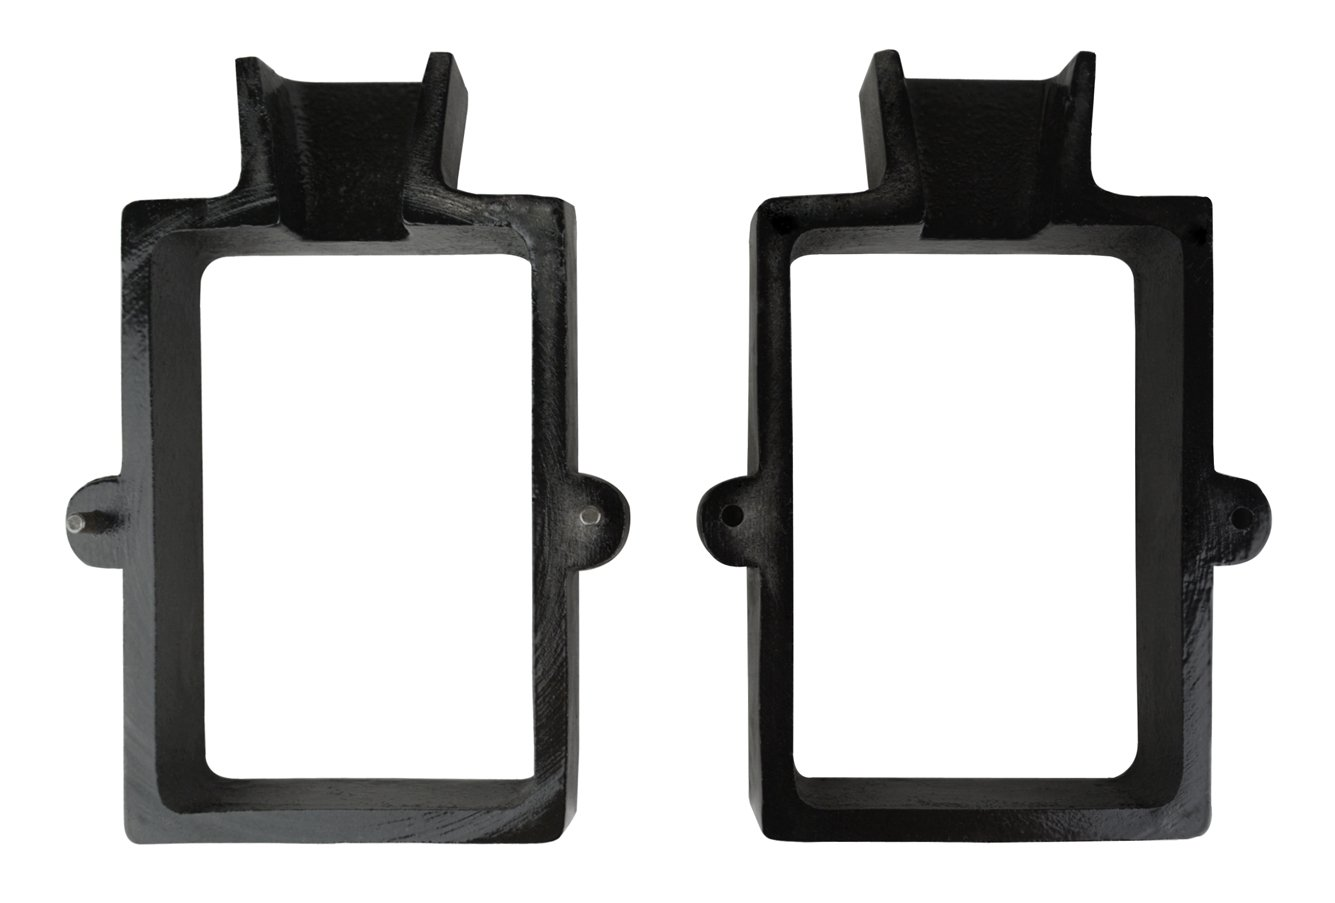 2 Piece Cast Iron Flask Mold Frame for Sand Casting Jewelry Making Metal Casting Tool by PMC Supplies LLC